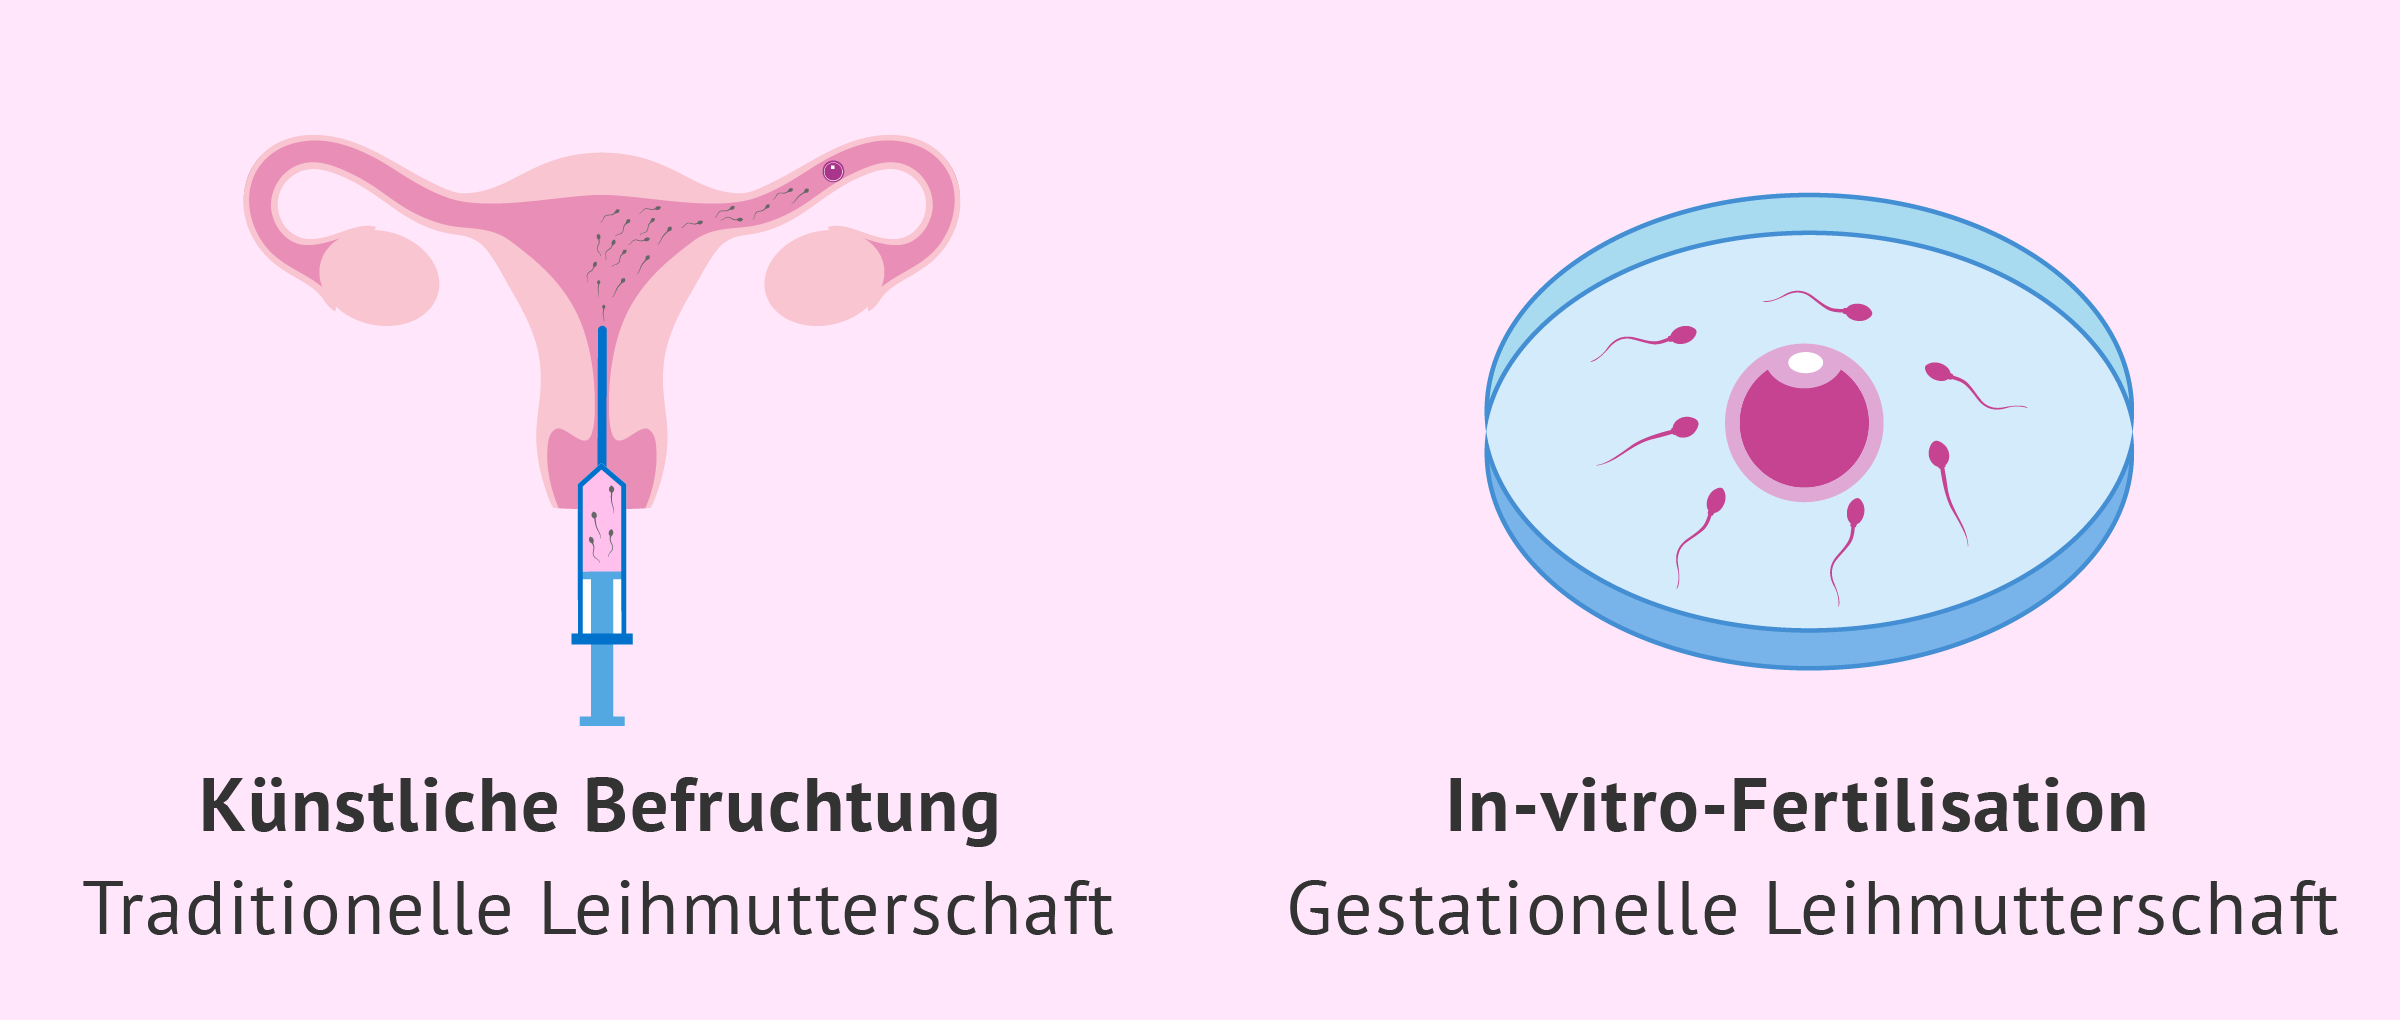 Methoden in der assistierten Reproduktion